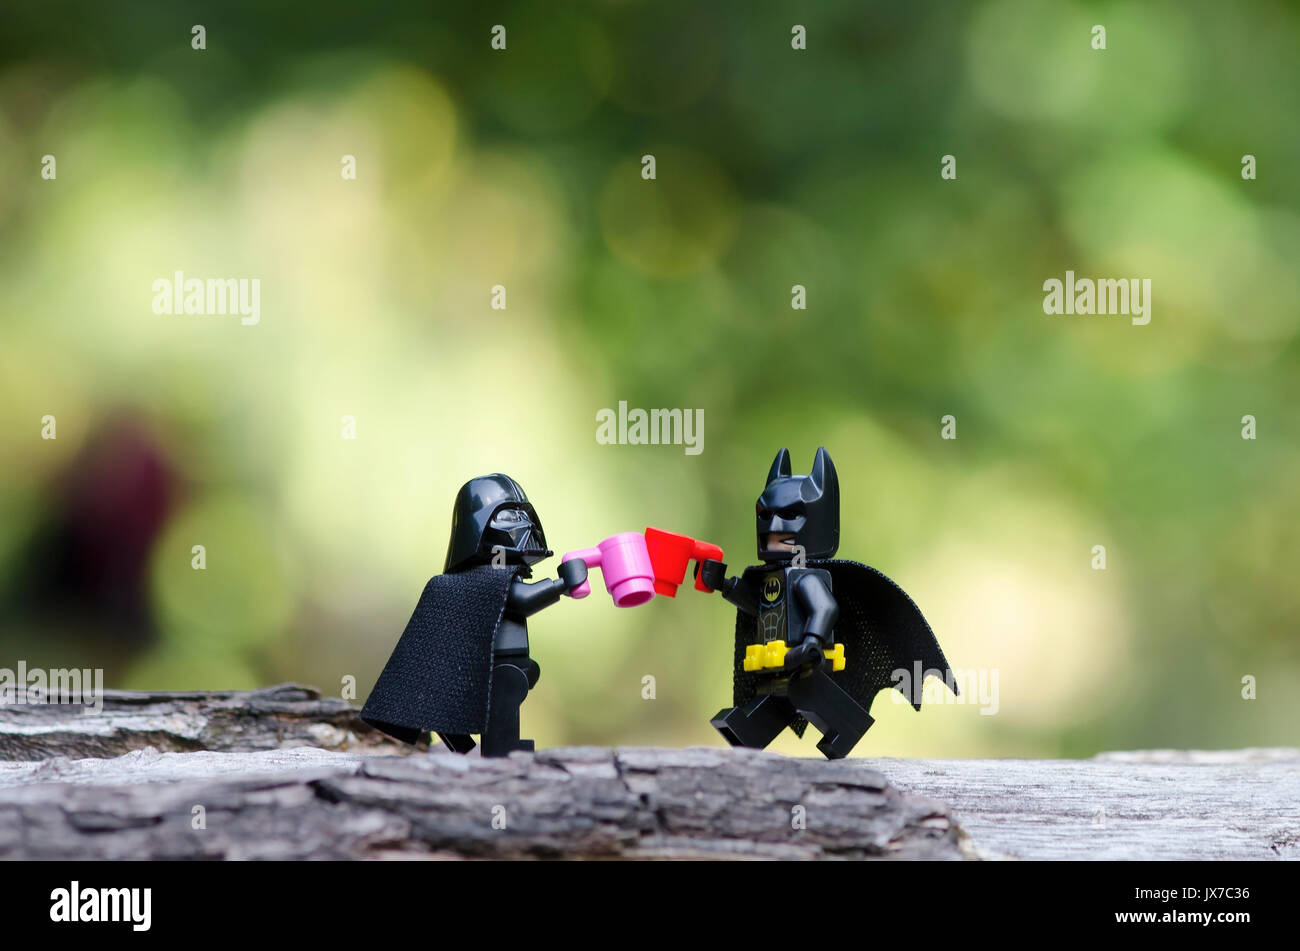 lego batman and darth vader having a toss - Stock Image